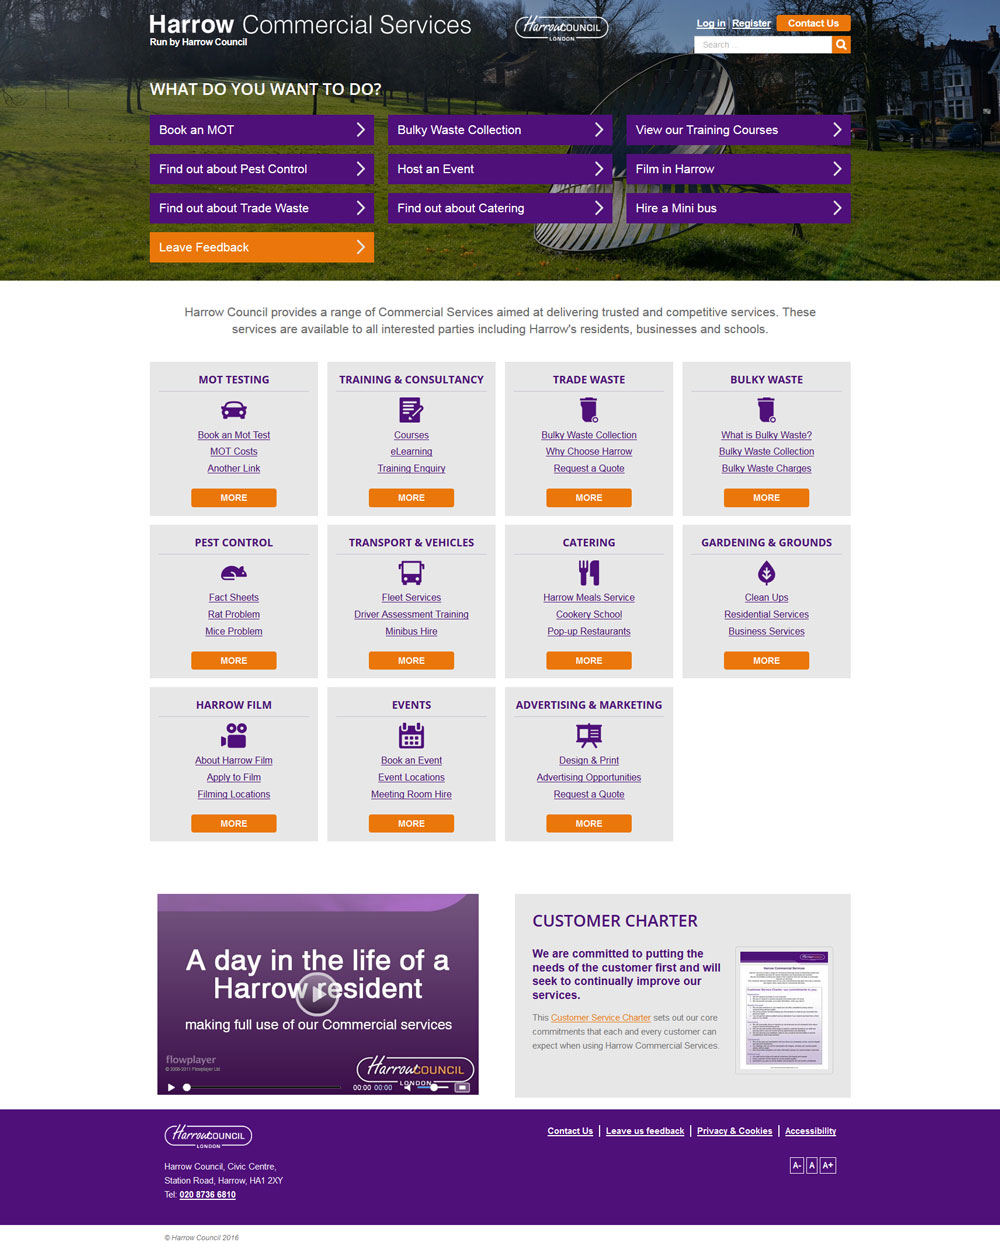 Desktop View Responsive Design - Harrow Council